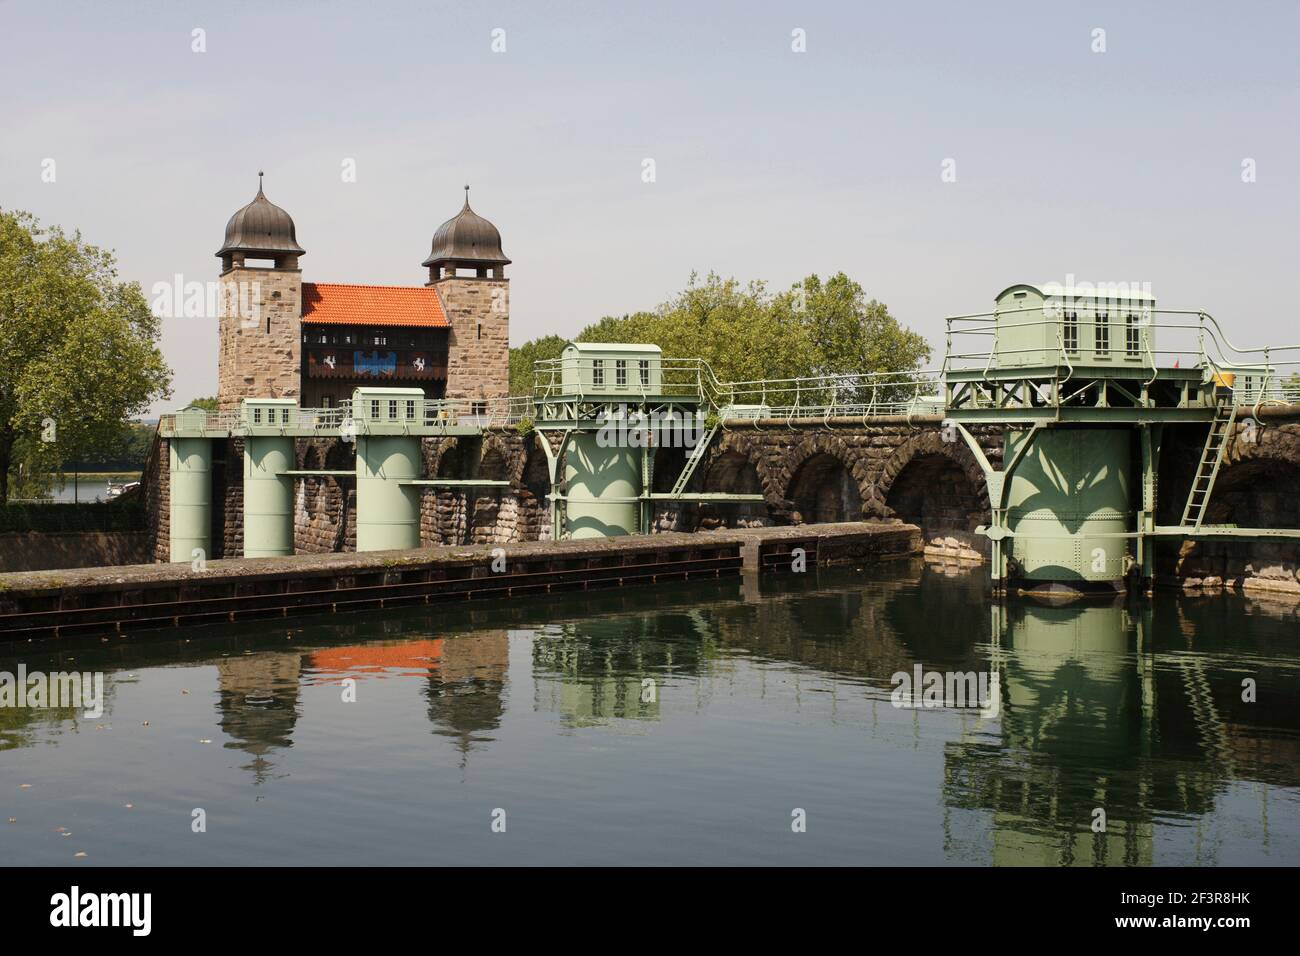 Disused shaft lock from 1912 in Waltrop Lock Park (Schleusenpark) on the Dortmund-Ems Canal in Waltrop-Oberwiese, Germany. Stock Photo